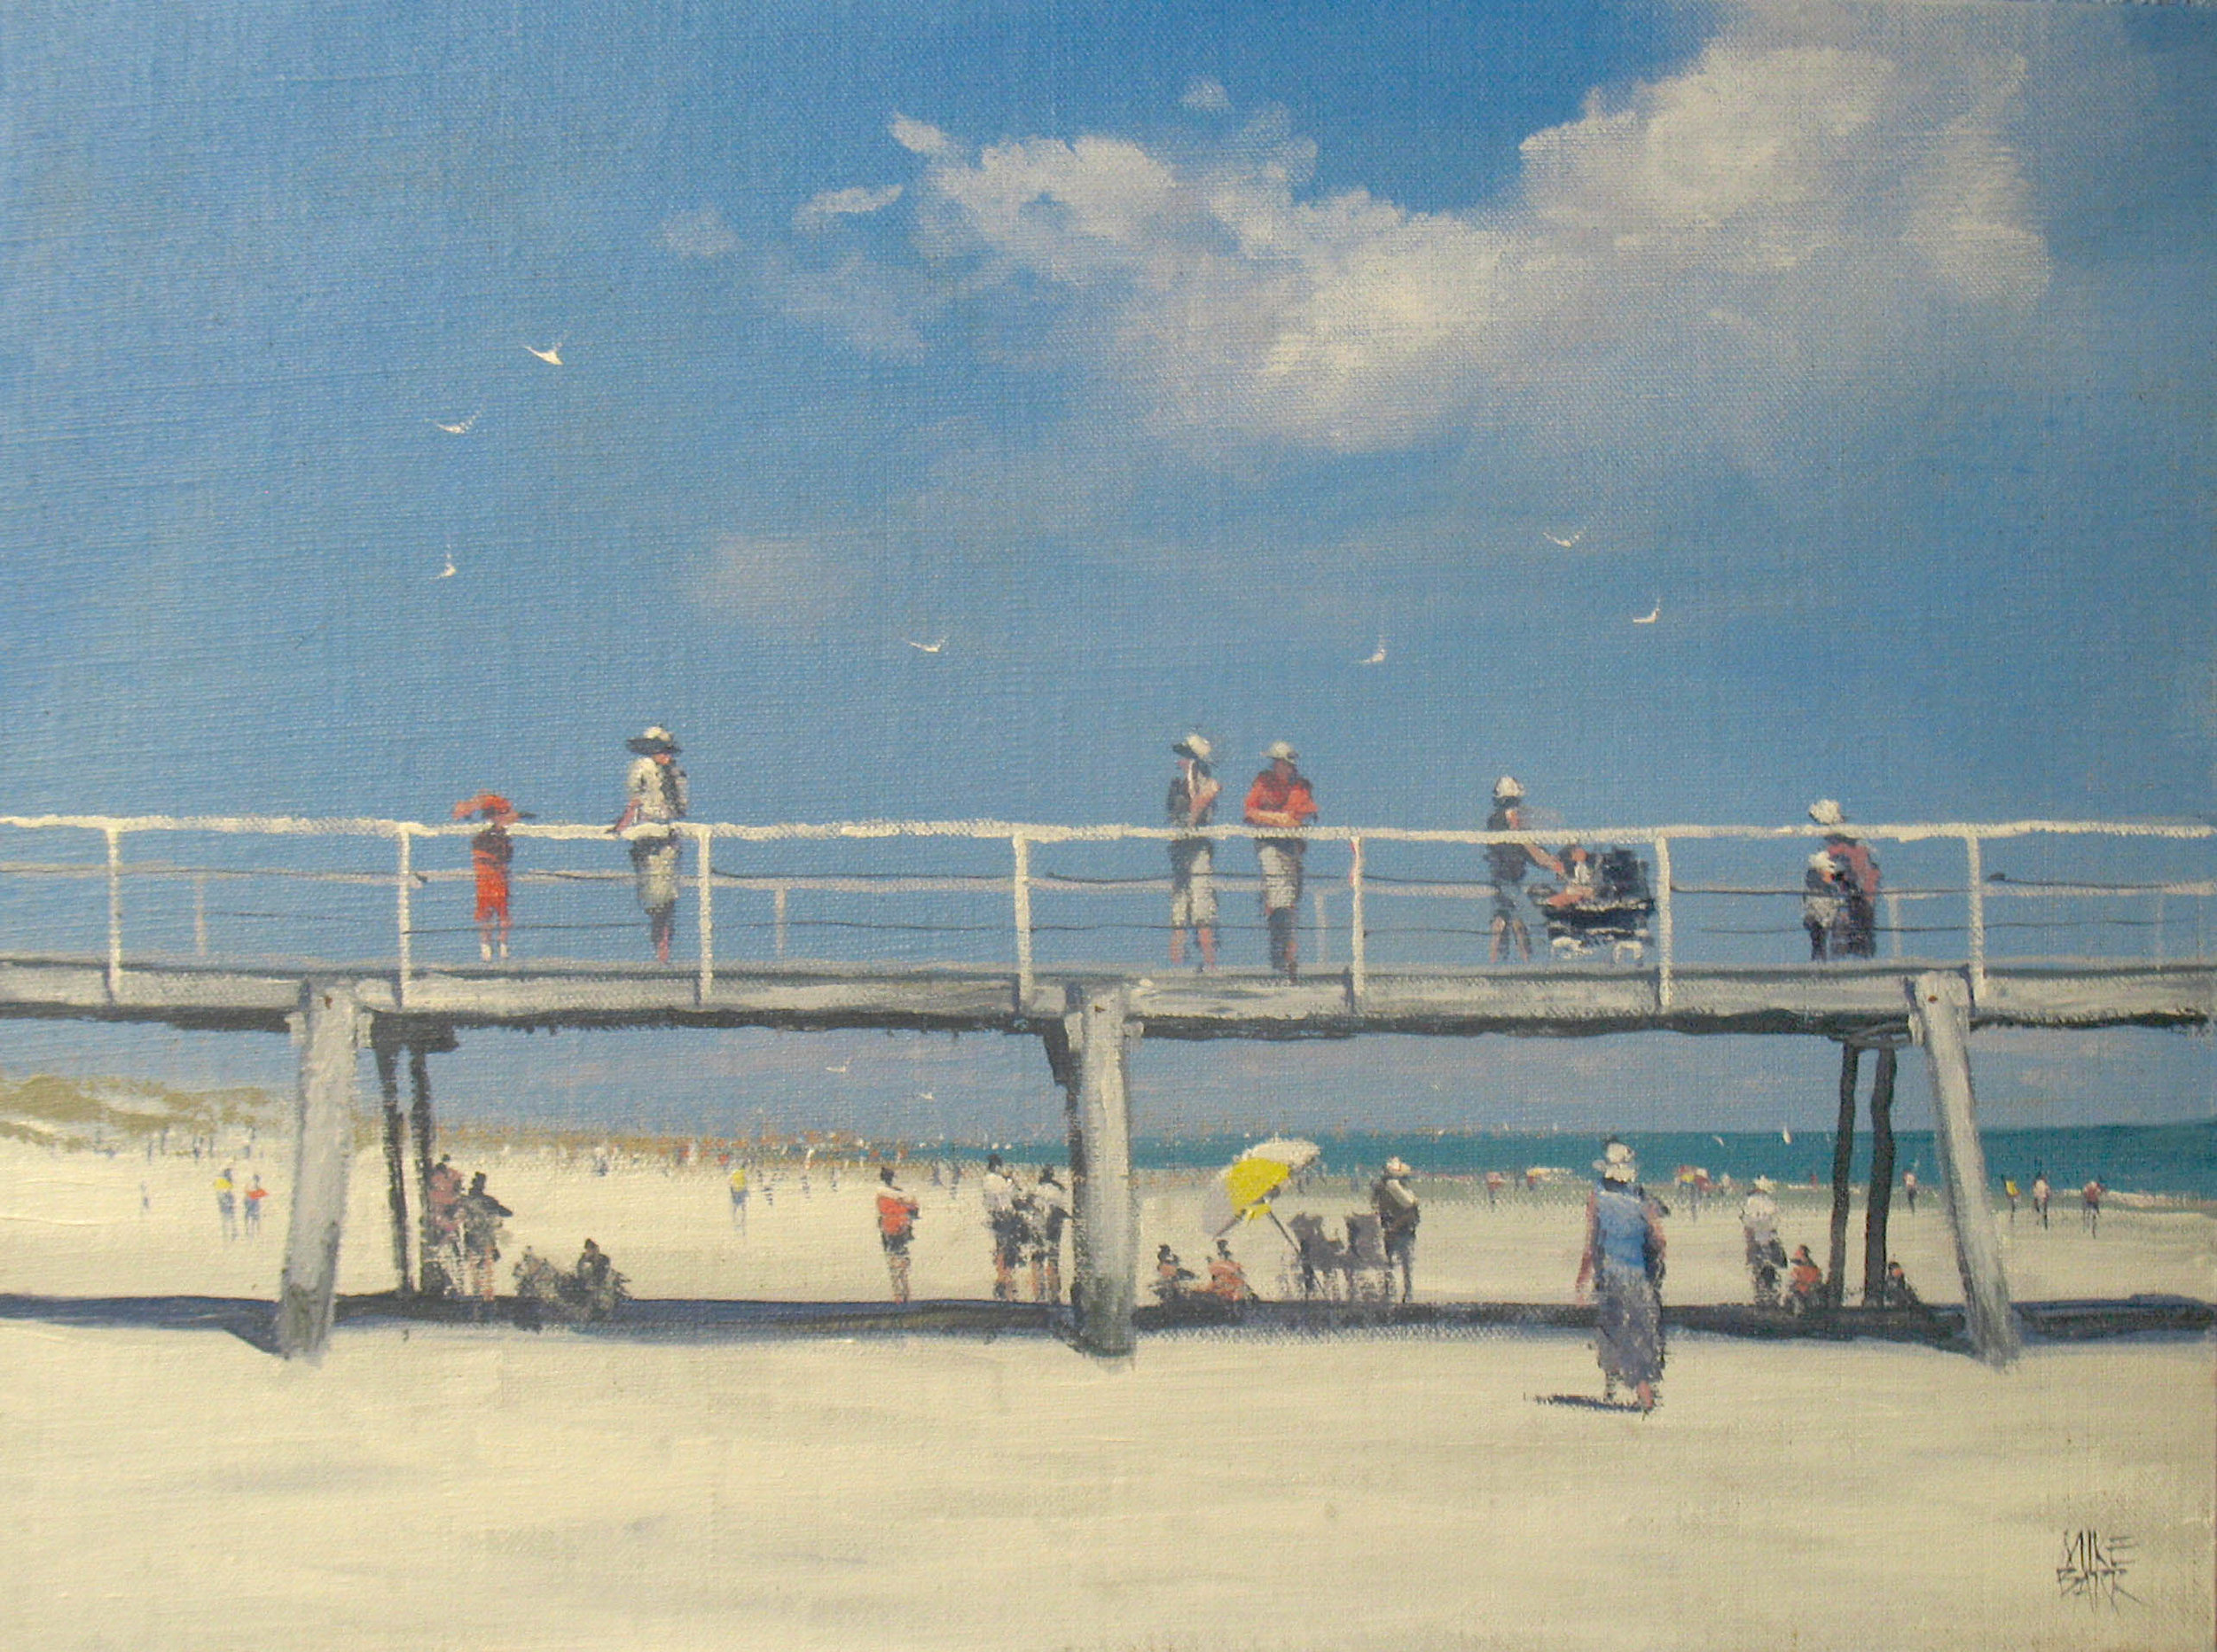 Semaphore Summer is one of several I have painted of the Semaphore Jetty in South Australia. It was greatly inspired by Charles Conder's work 'Holiday at Mentone'. We can be inspired by other artists without copying their work or style.